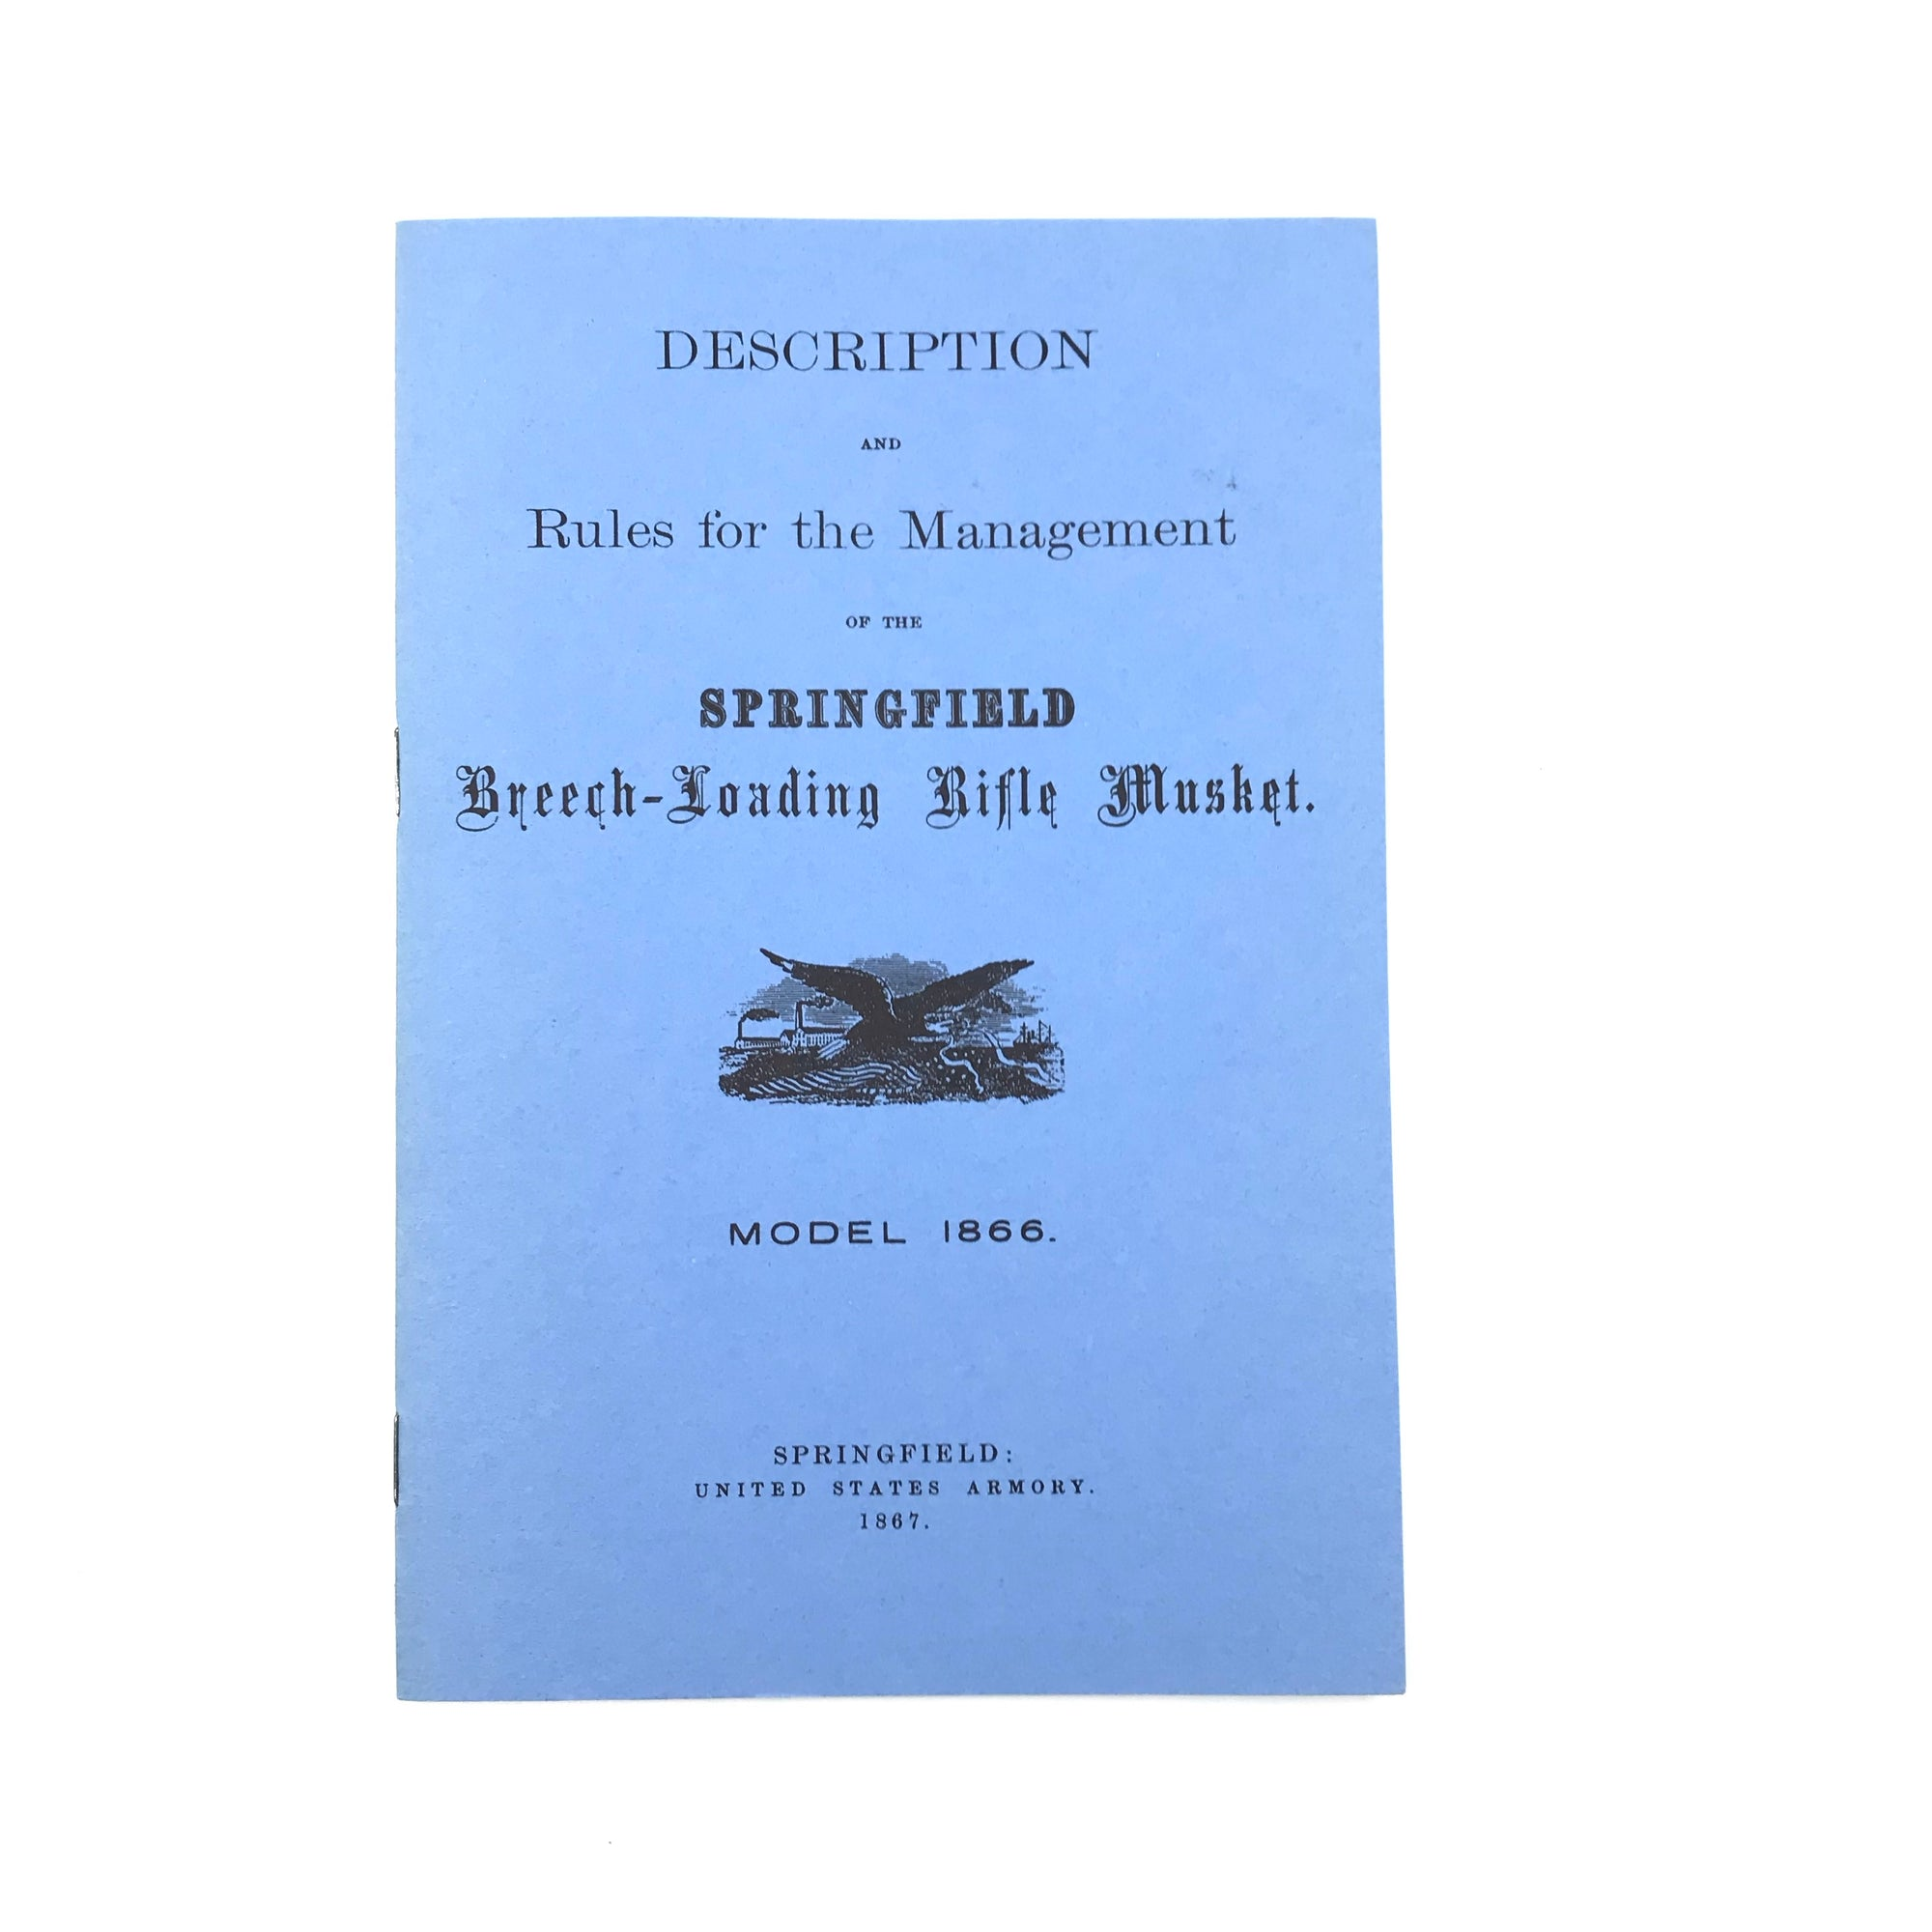 Descrption and Rules of Management of the Springfield Breech Loading Rifle Musket Model 1866 P.B. Reprint